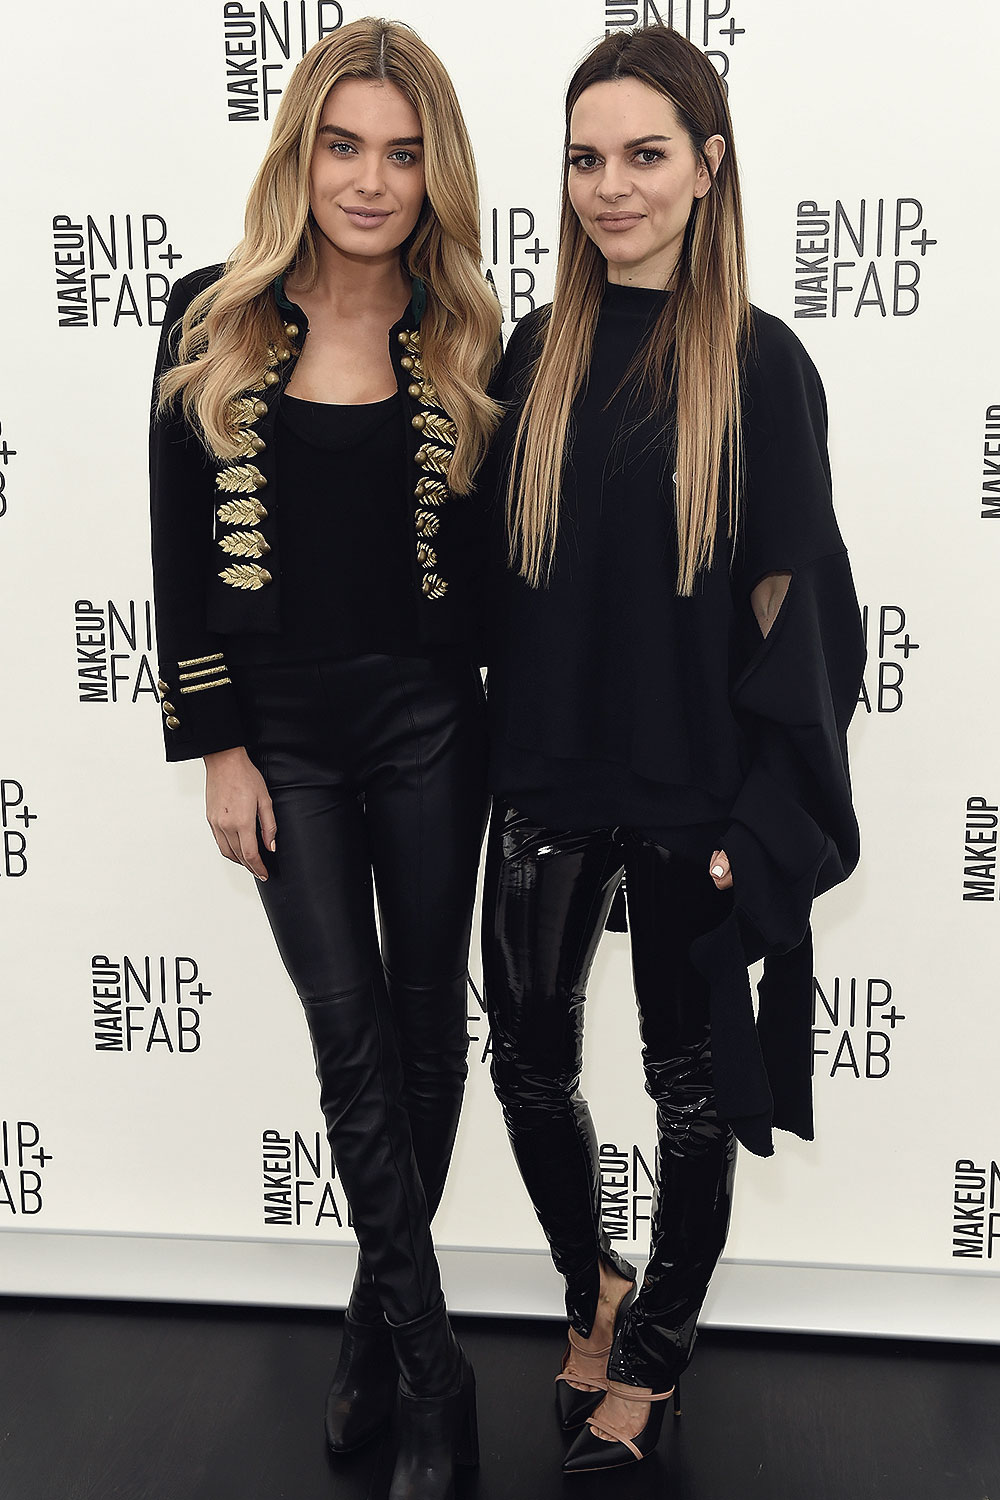 Chloe Lloyd and Maria Hatzistefanis attend the Mario Dedivanovic & Maria Hatzistefanis launch